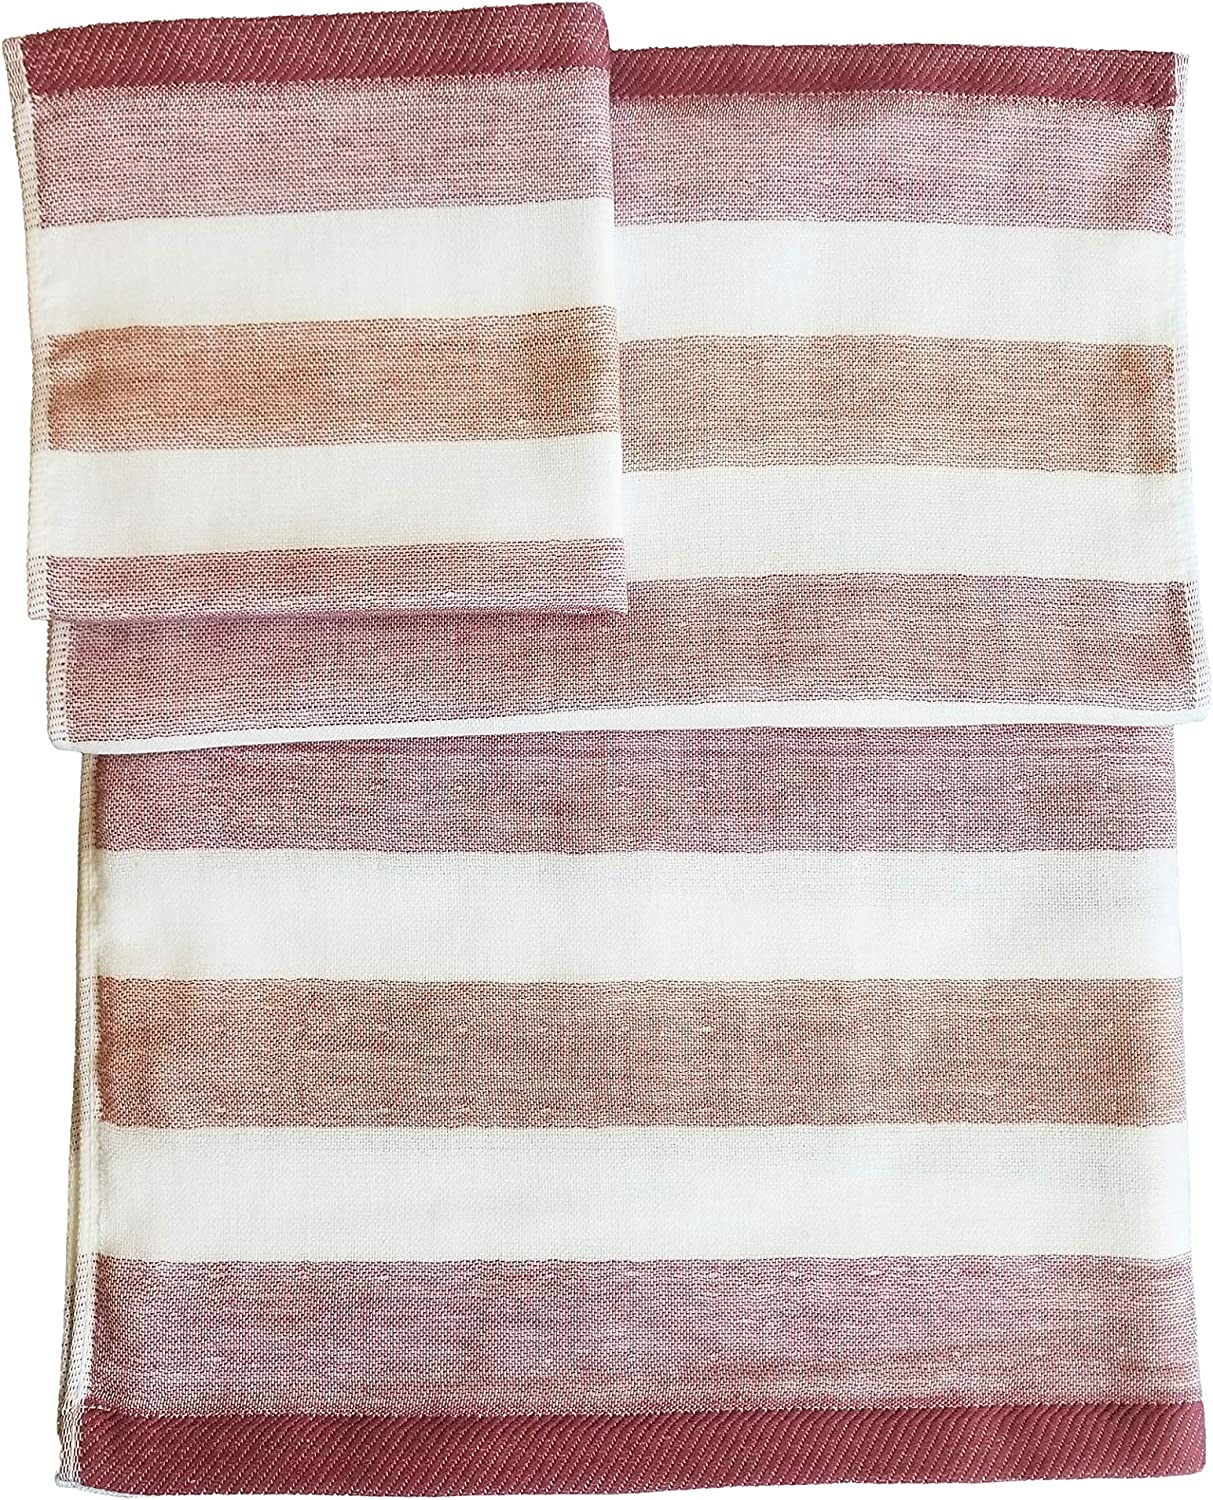 Animer and price revision IPPINKA Senshu Japanese Towel Ultra Soft Quick-Drying Two-Ton online shopping